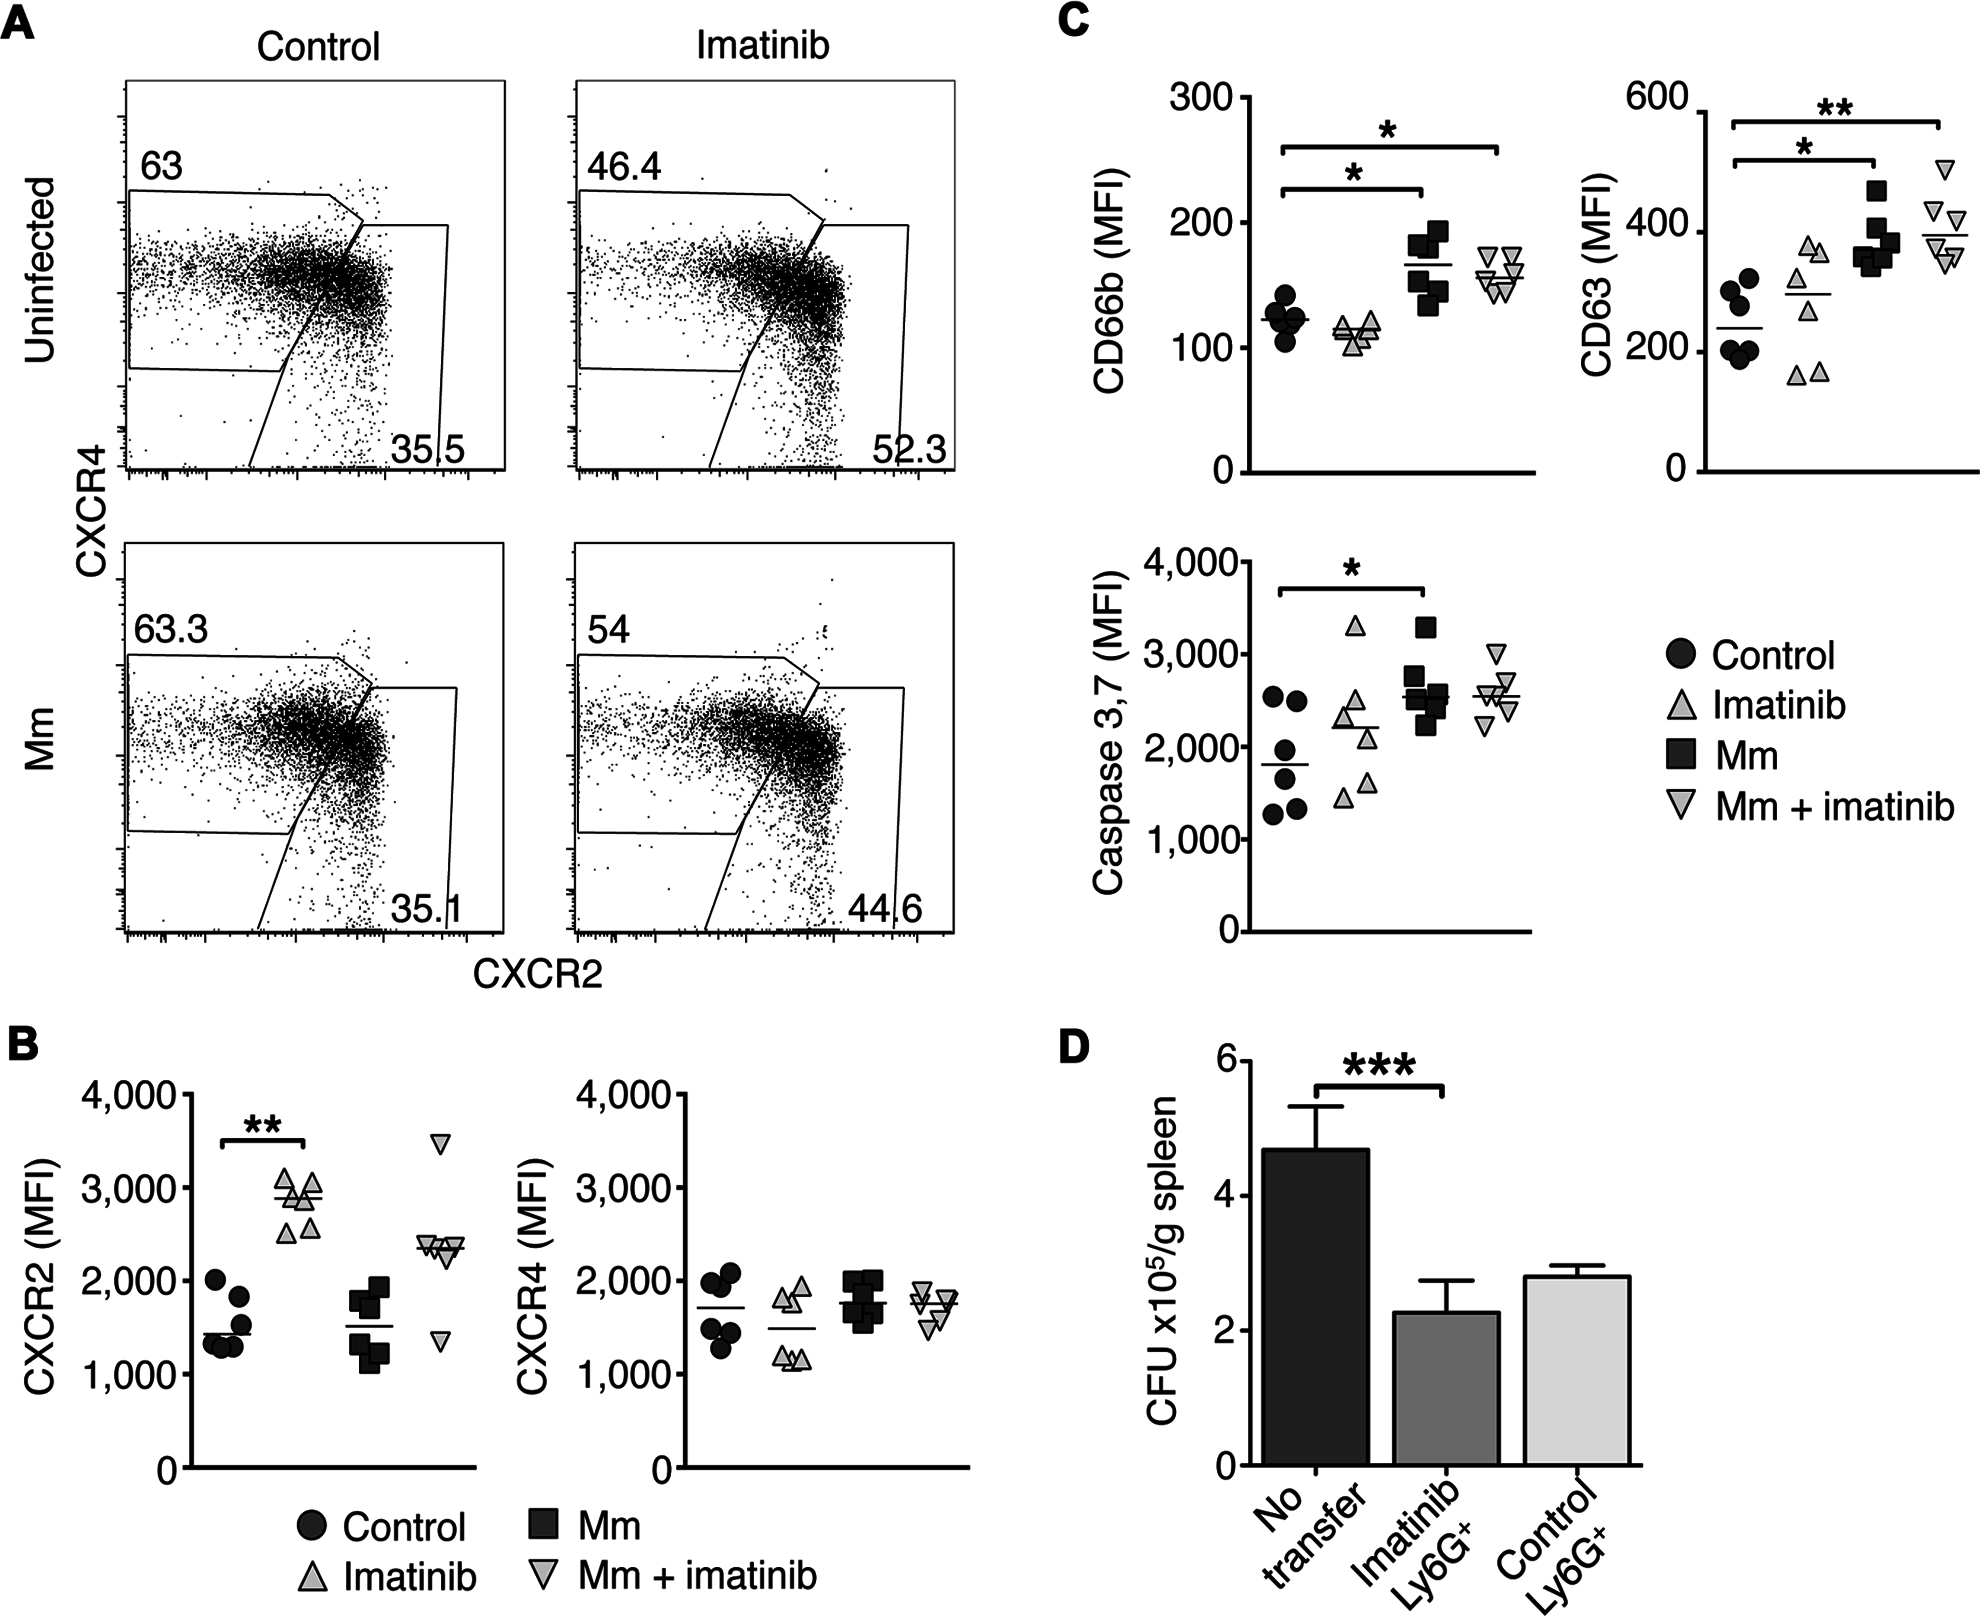 Effects of Imatinib on CXCR2 expression, activation, and apoptosis in neutrophils.